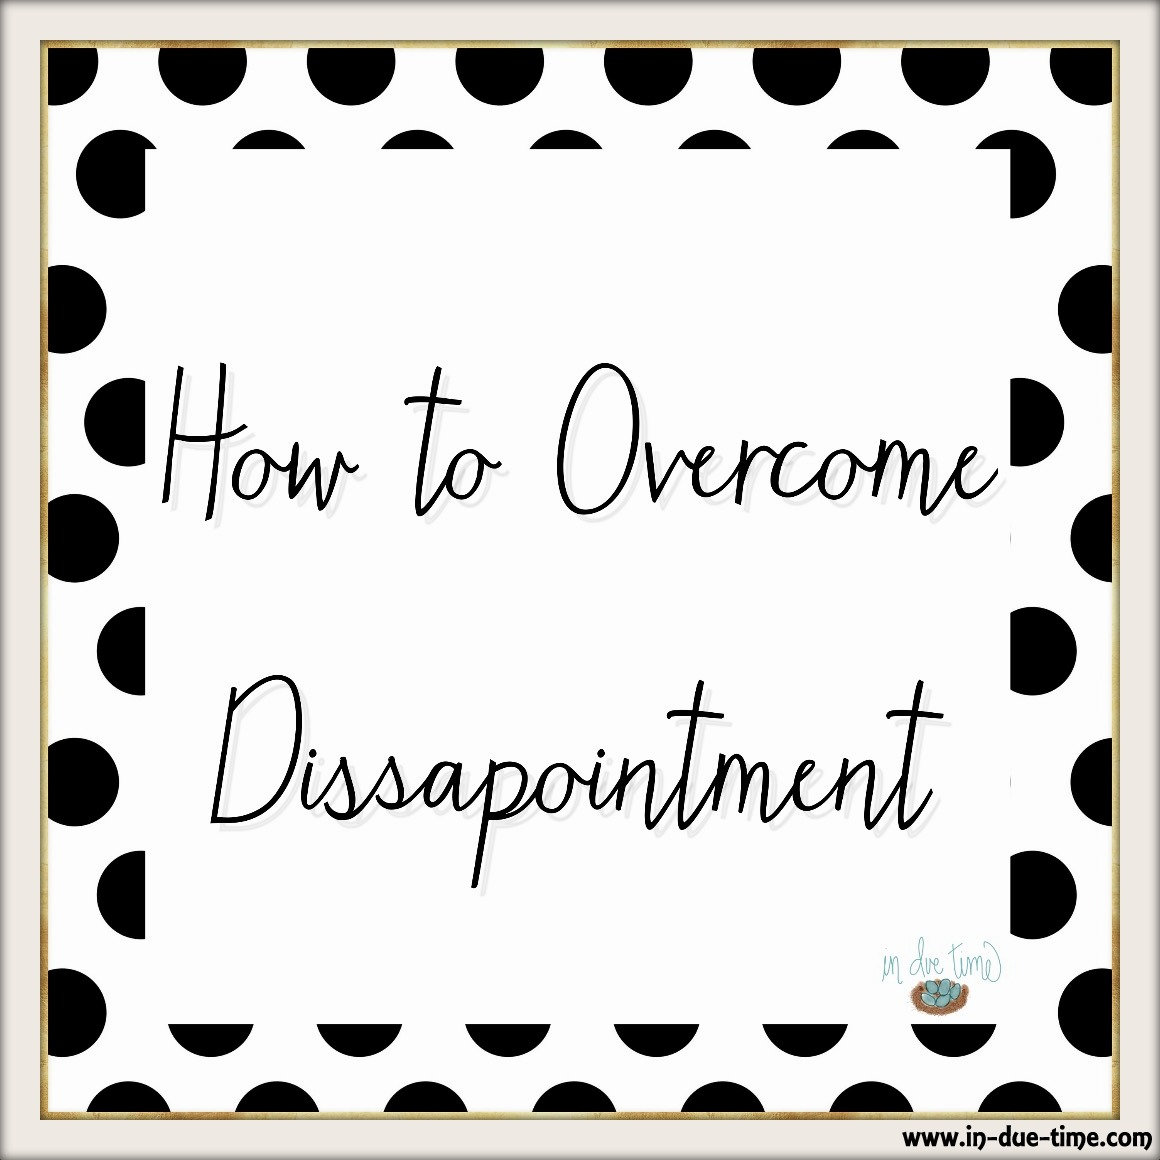 How to Overcome Dissapointment - In Due TIme Blog